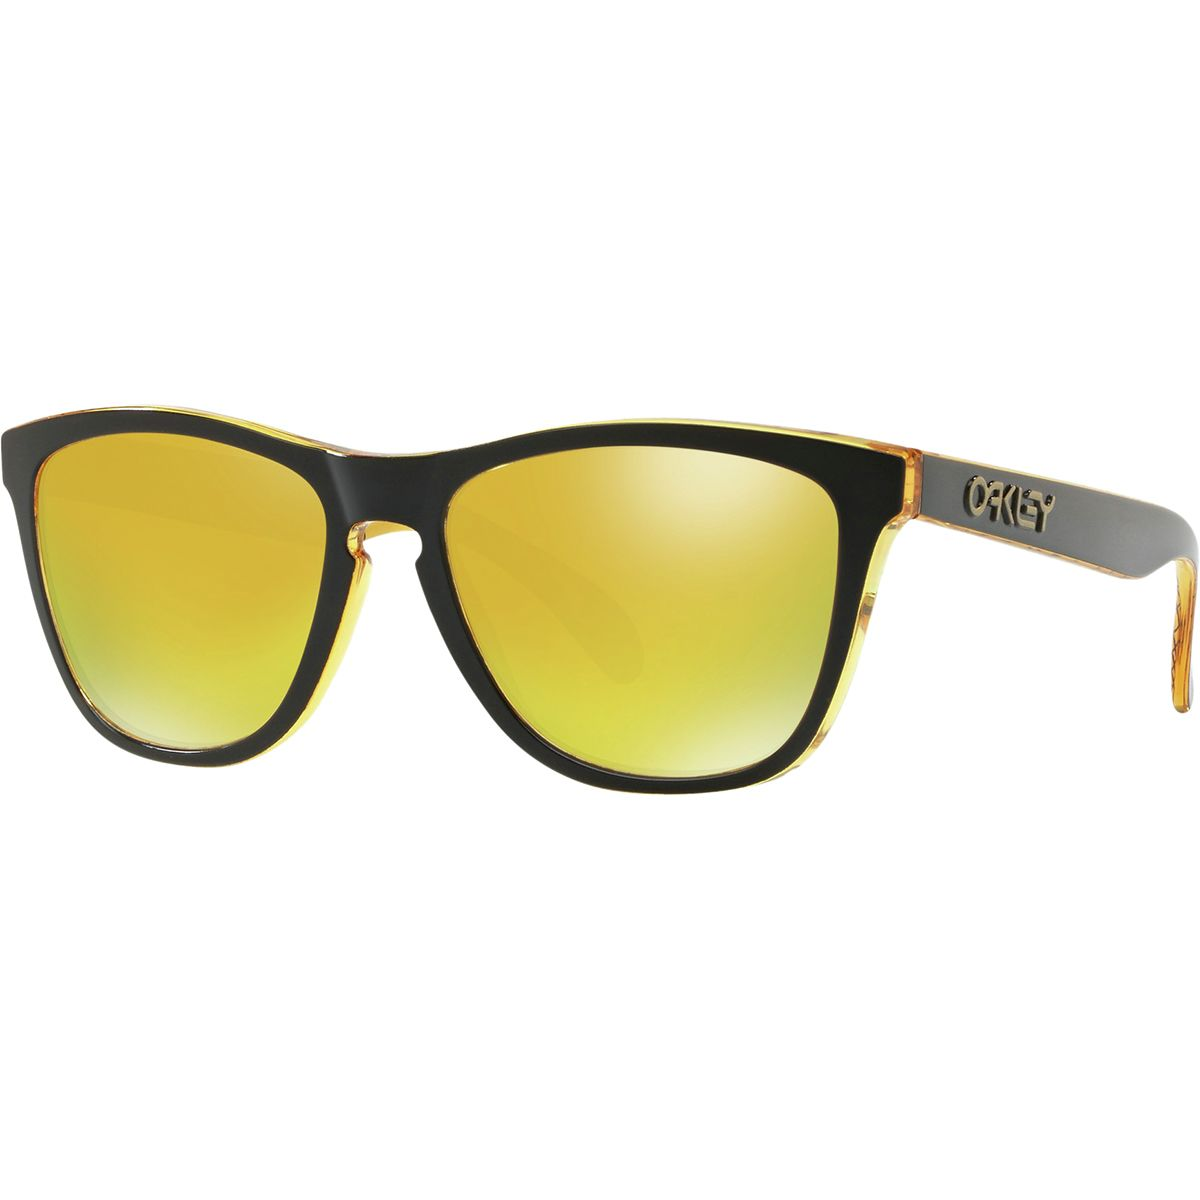 Oakley Frogskins Urban Commuter Collection Sunglasses - Men's